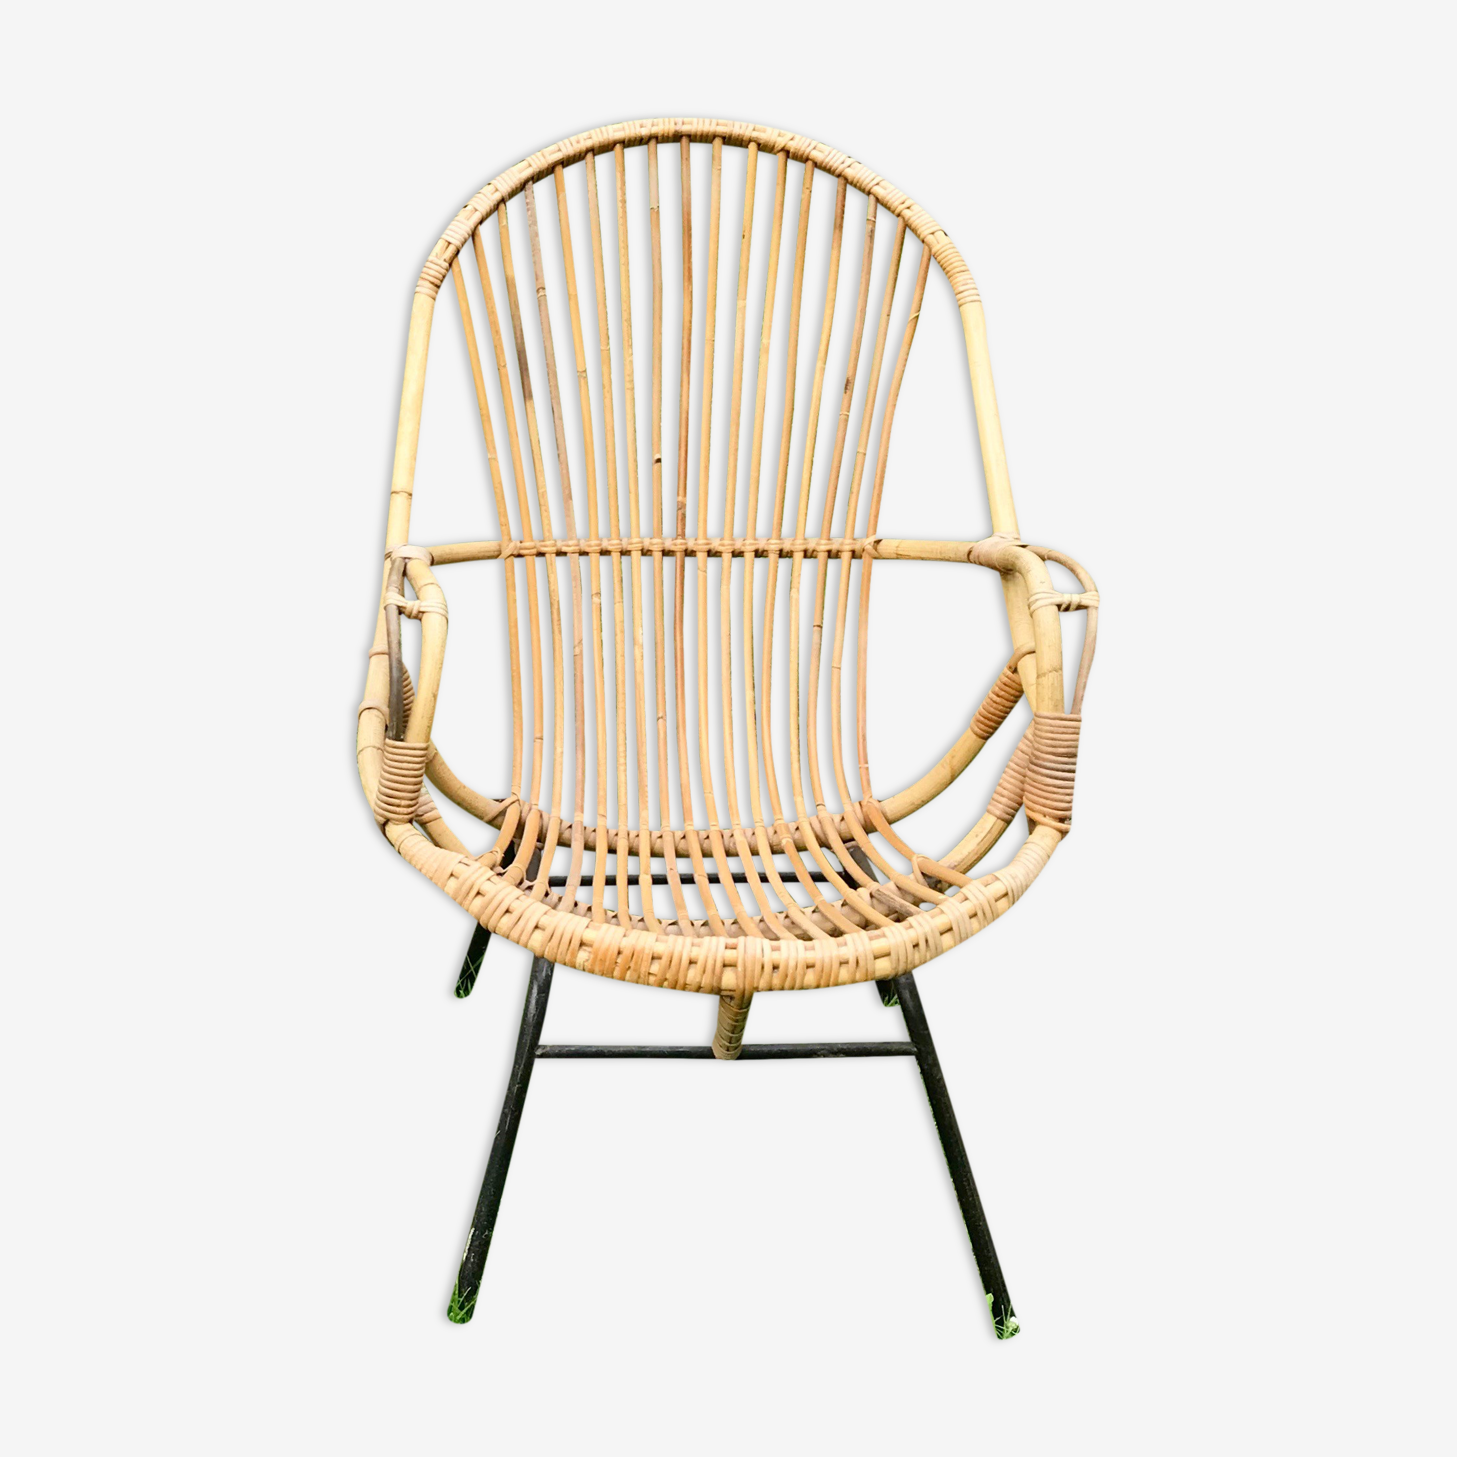 Armchair rattan of the 1960s